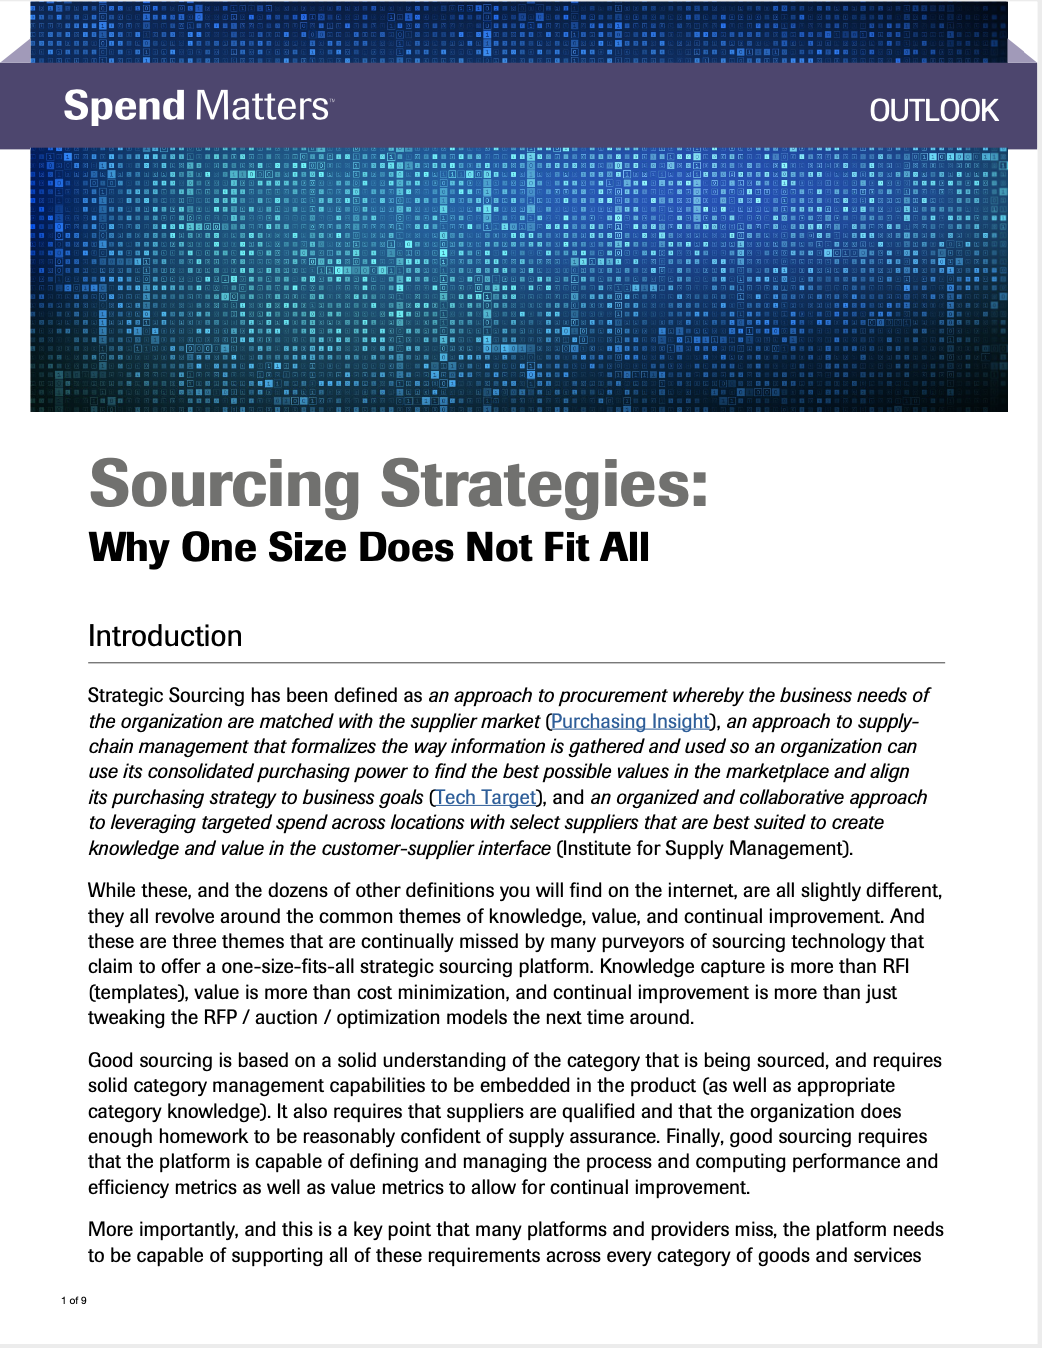 Spend Matters Sourcing Strategies White Paper